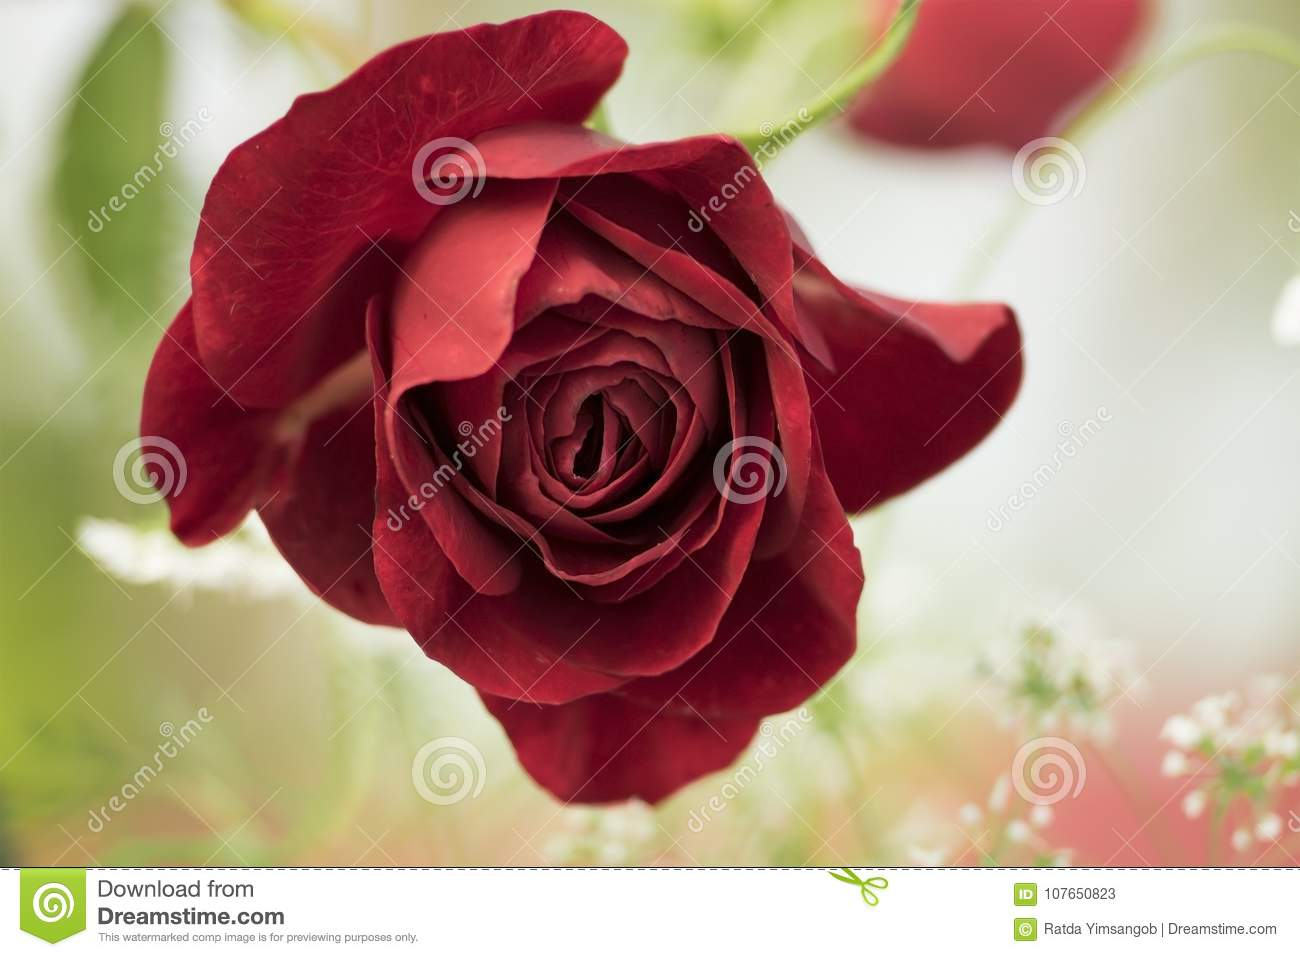 A red rose flower on beautiful background stock image image of the deep red rose is in blooming with lovely white flowers on beautiful background izmirmasajfo